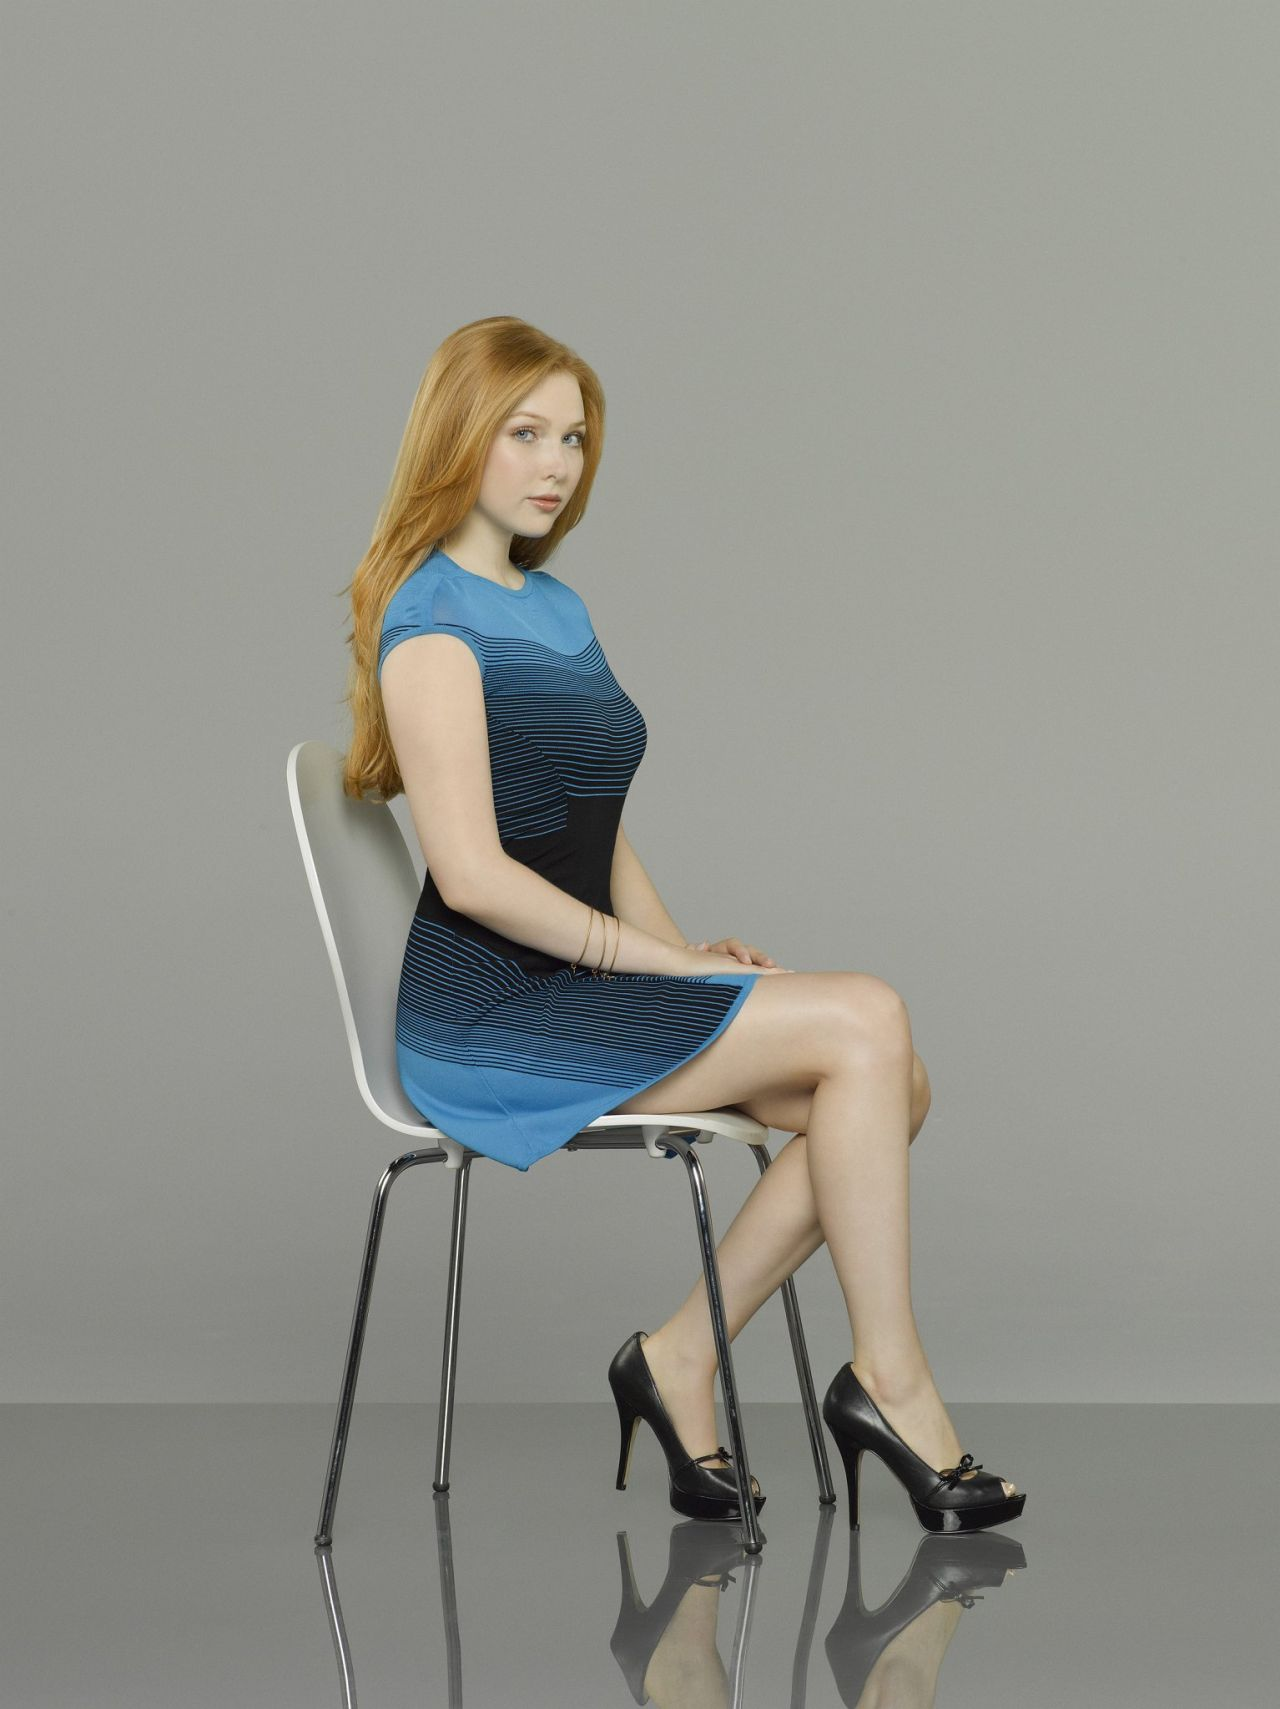 Molly c quinn photo 30 of 56 pics wallpaper photo 668423 theplace2